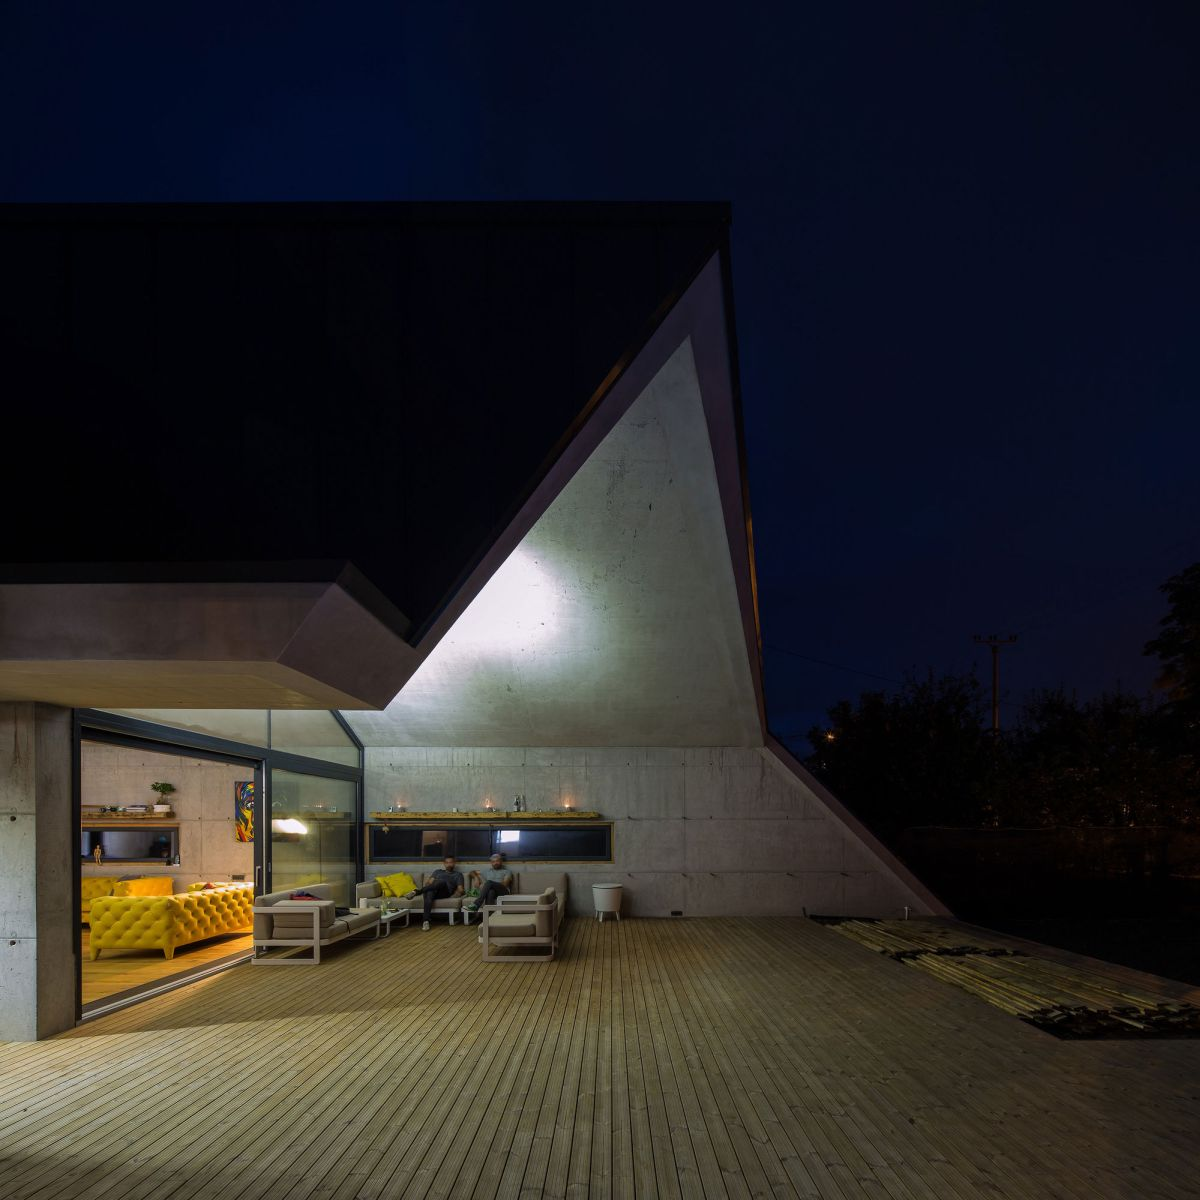 Casa G3 in Otopeni extension at night